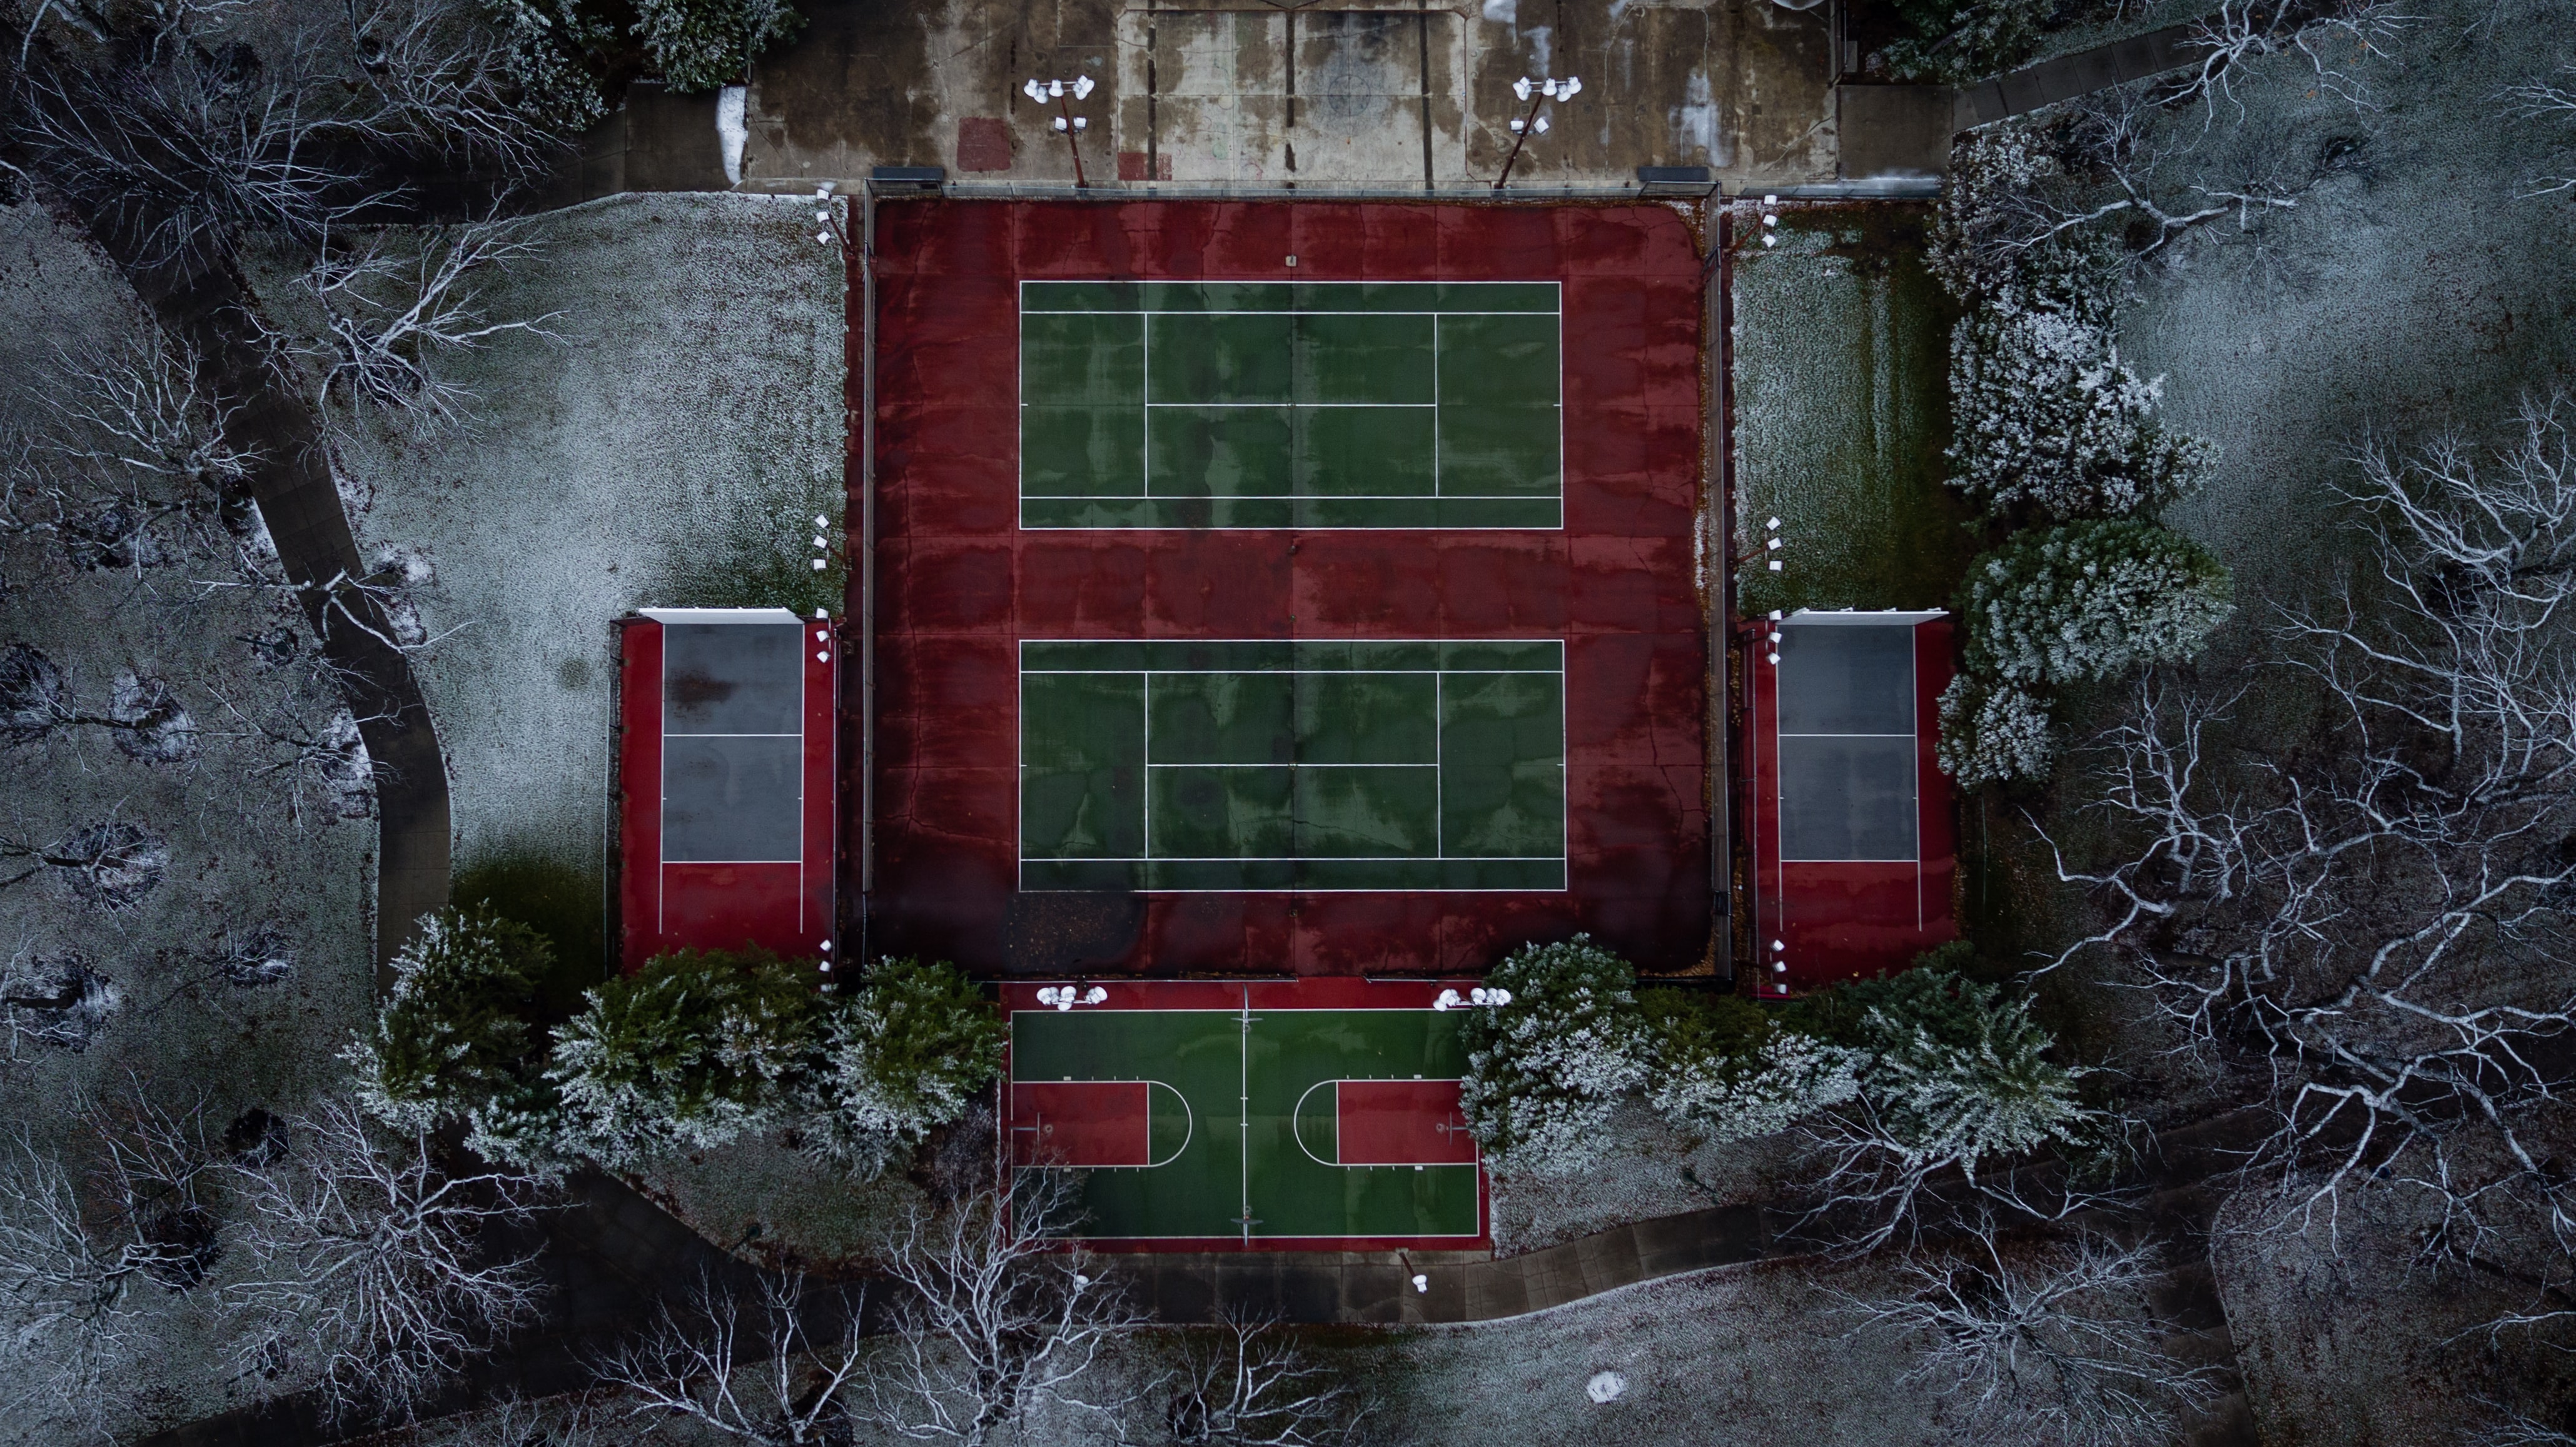 aerial photo of sports field